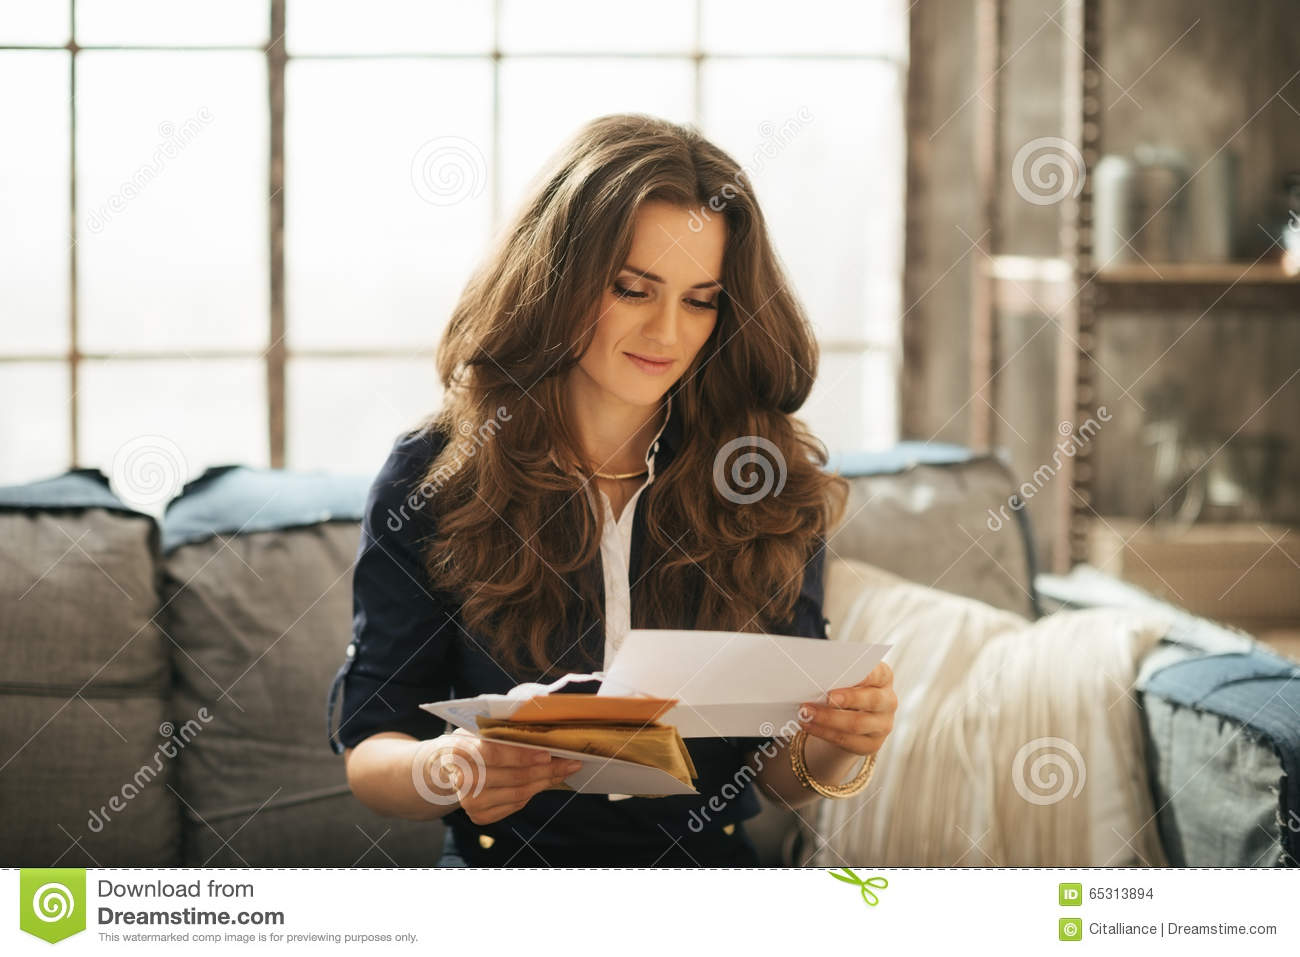 Elegant woman is sitting on couch and reading correspondence